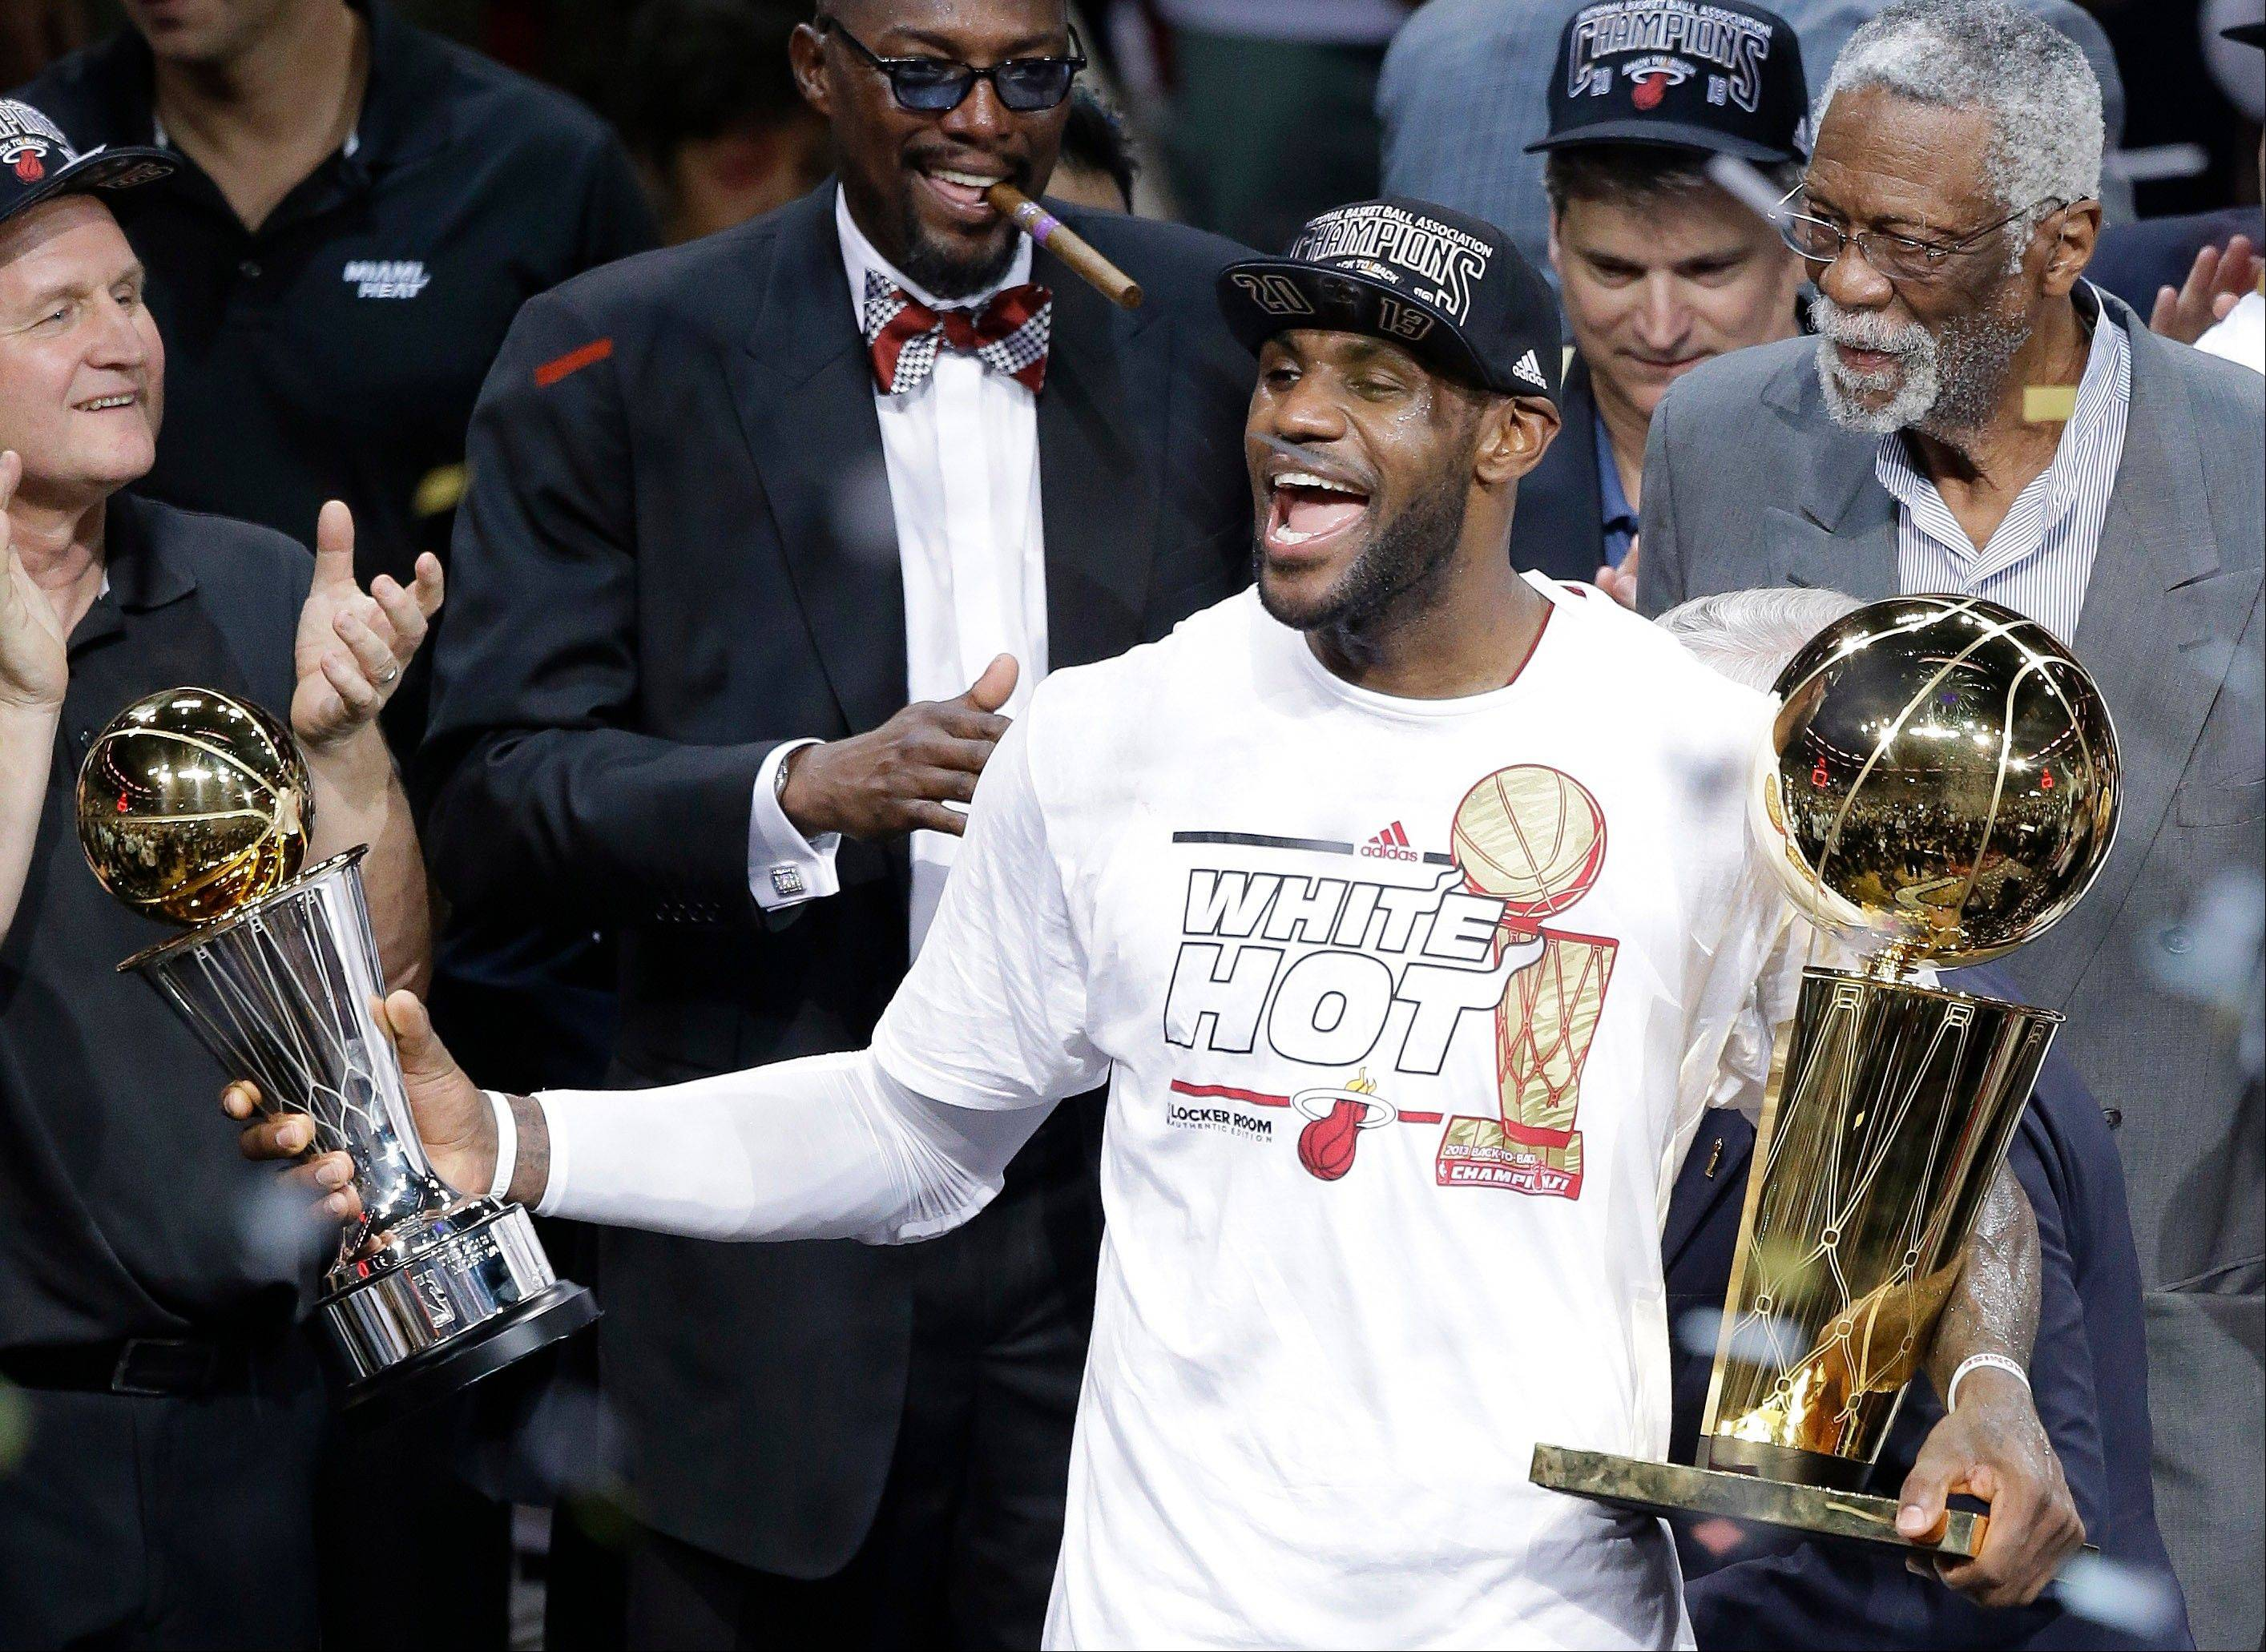 The Miami Heat's LeBron James, left, holding the Larry O'Brien NBA Championship Trophy and his Bill Russell NBA Finals Most Valuable Player Award after Game 7 of the NBA basketball championship game against the San Antonio Spurs, Friday, June 21, 2013, in